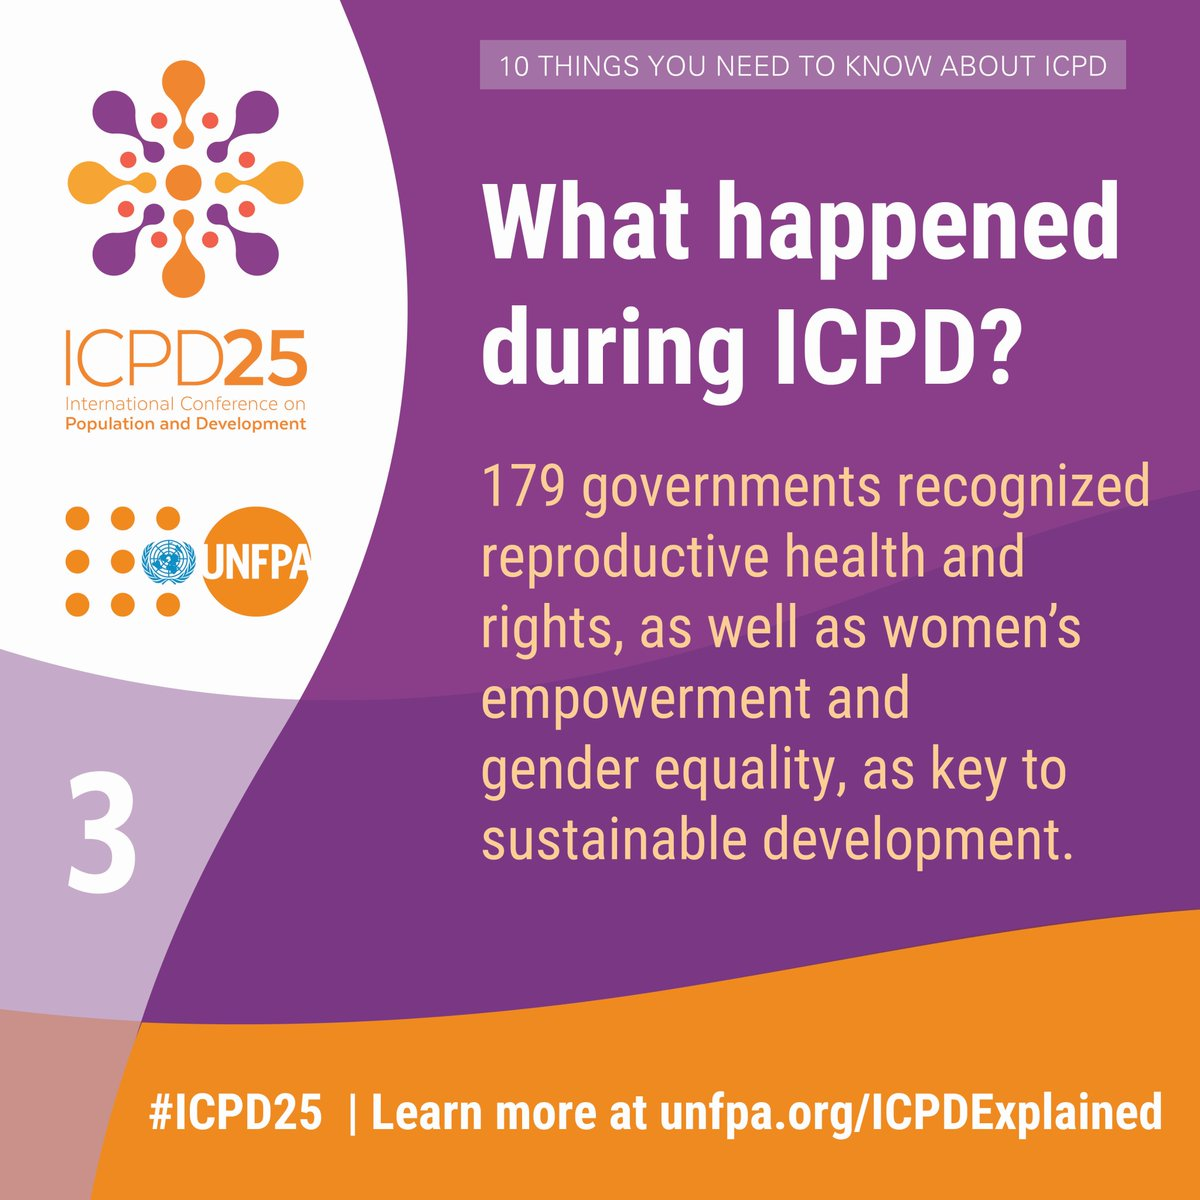 #DidYouKnow: millions of people can now aspire to a better life by making informed choices about their sexual and reproductive health and rights?   Learn more: http://unfpa.org/ICPDExplained  #ICPD25 #CPD52